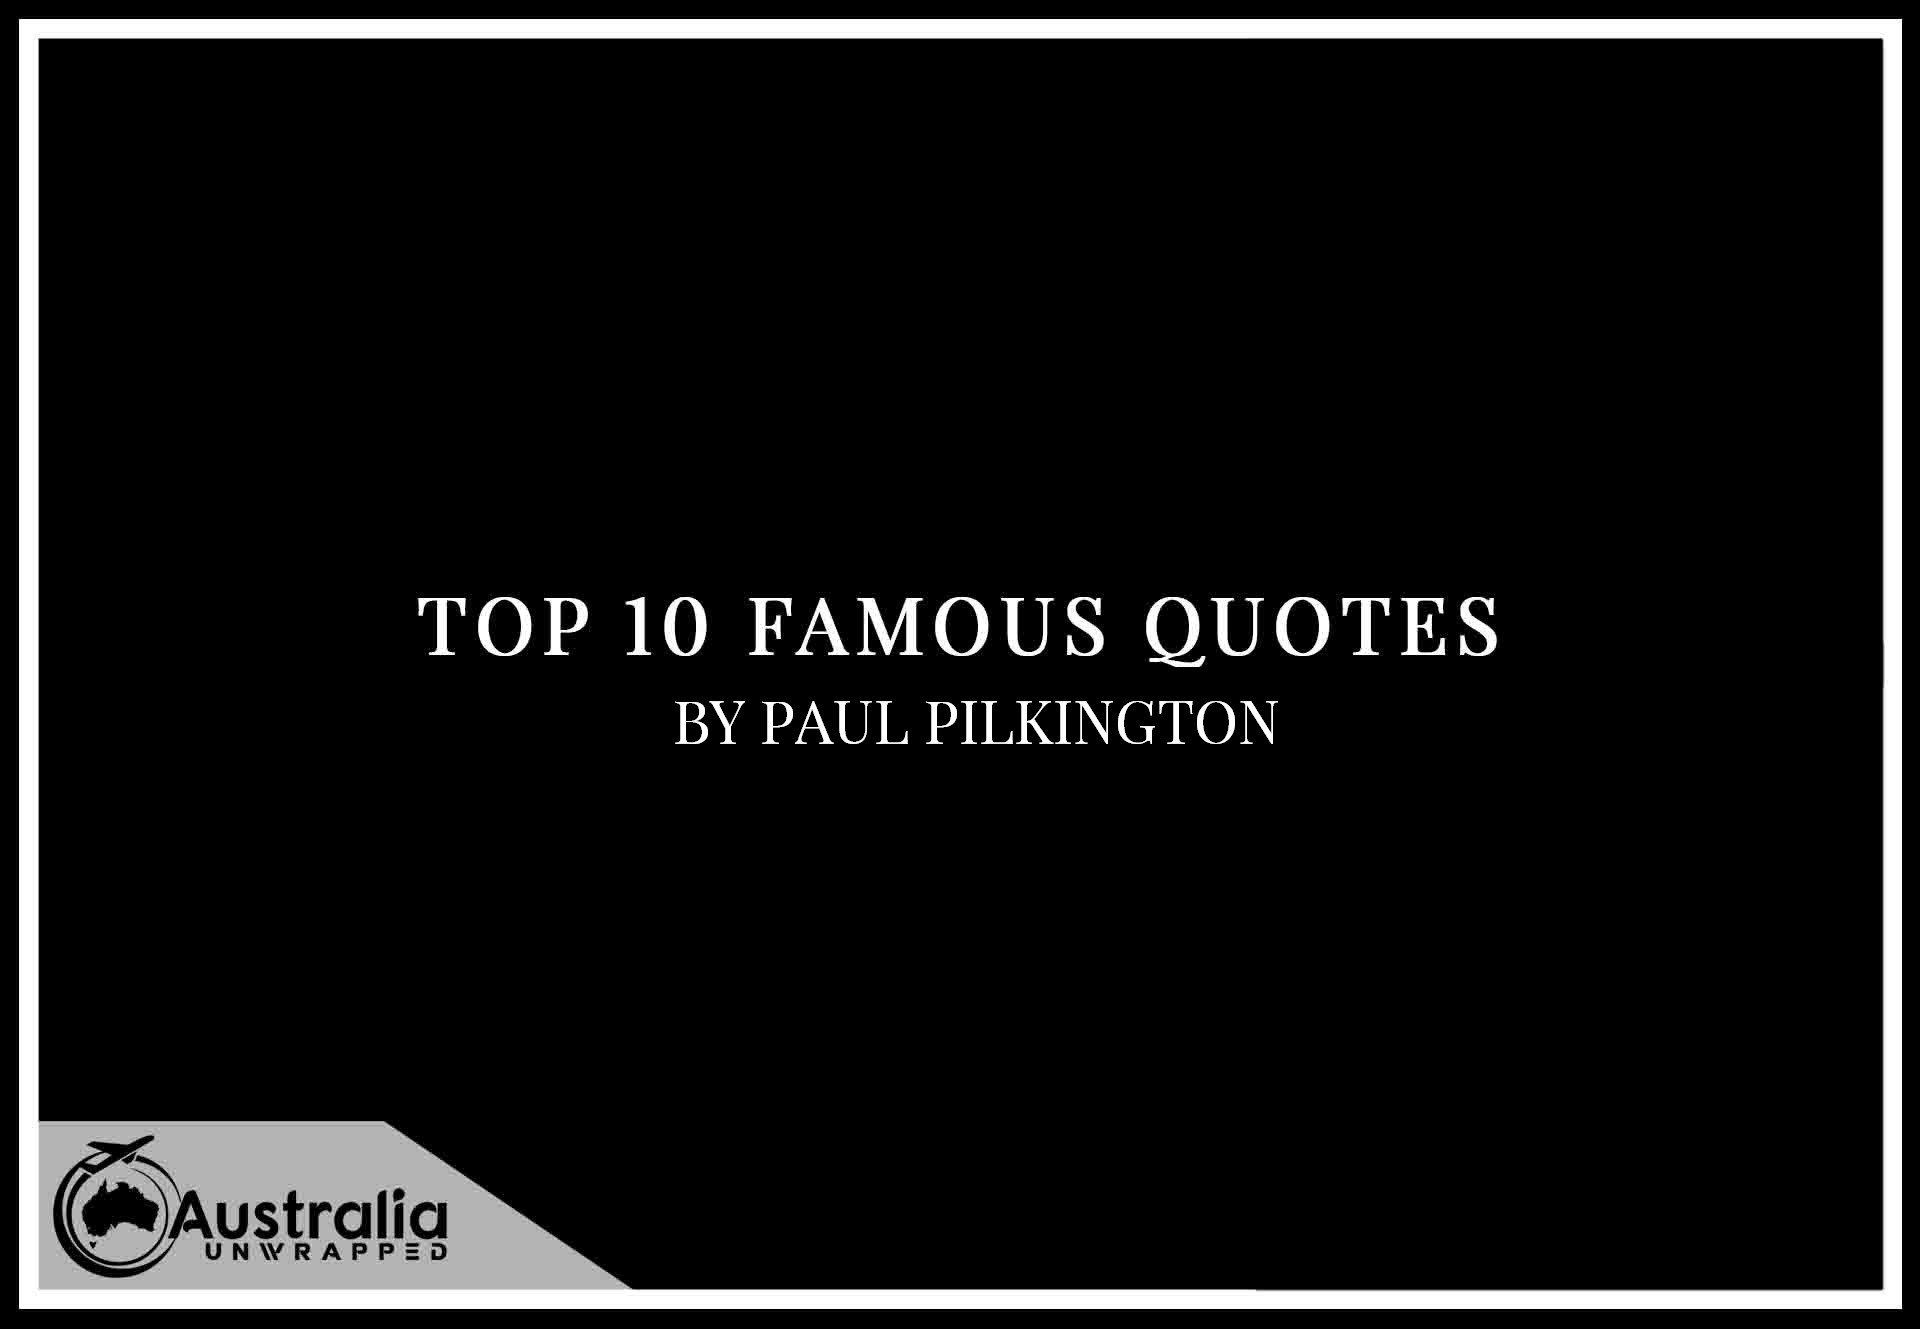 Top 10 Famous Quotes by Author Paul Pilkington